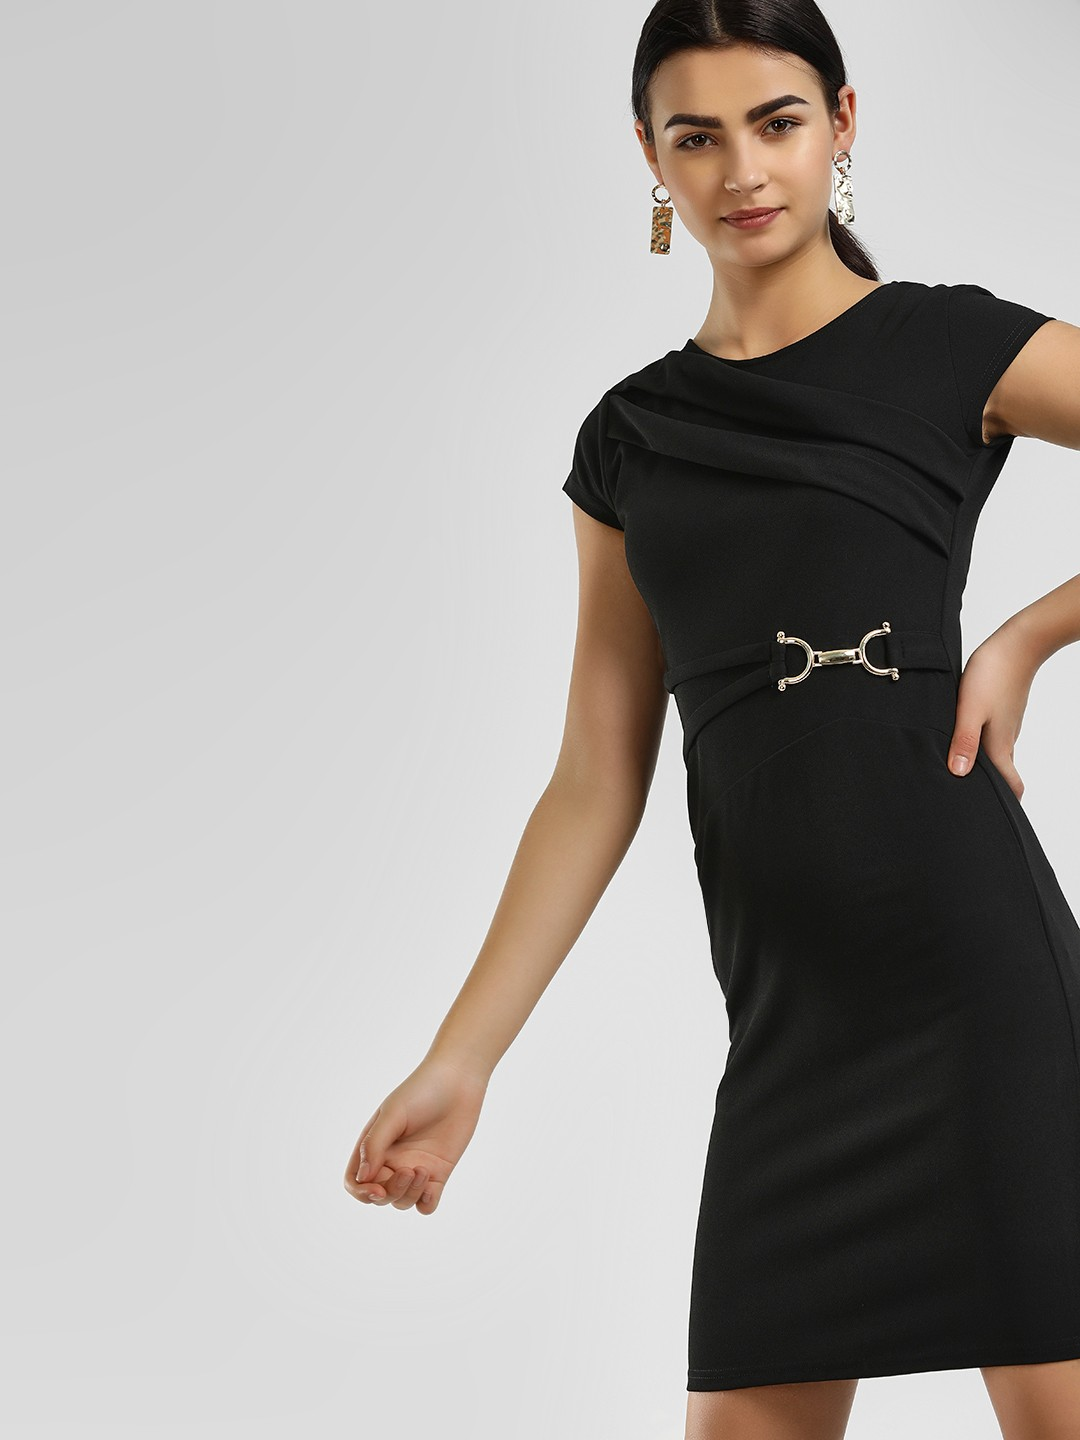 KOOVS Black Hardware Belt Bodycon Dress 1